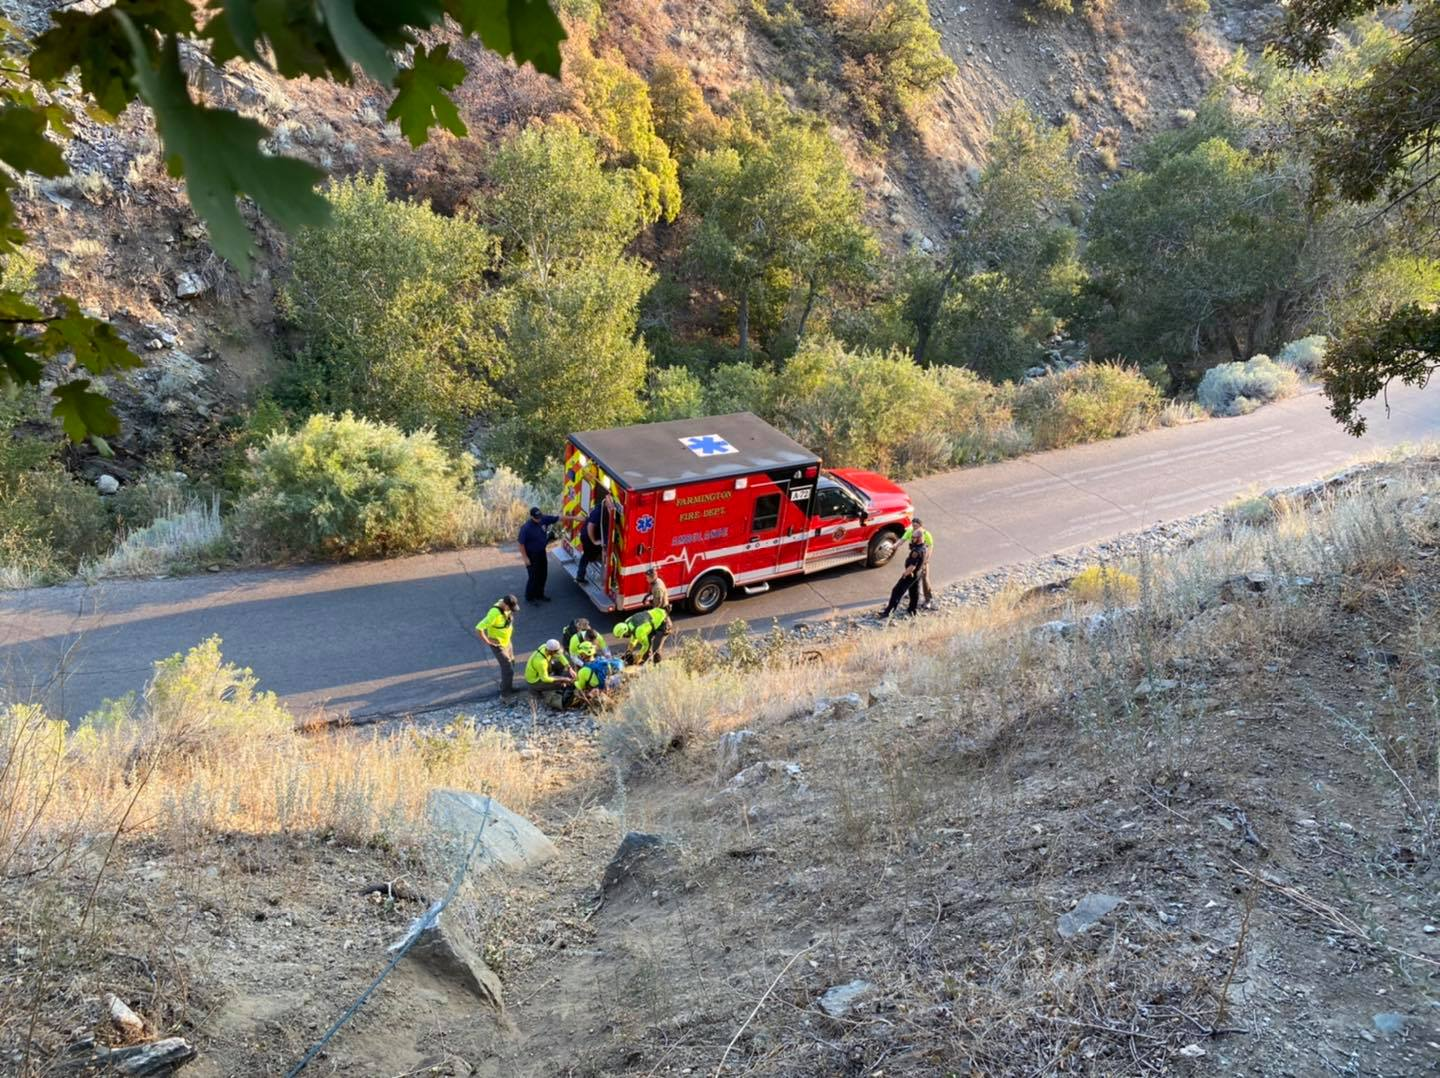 31 Year Old Killed After Roll Over Crash In Davis County